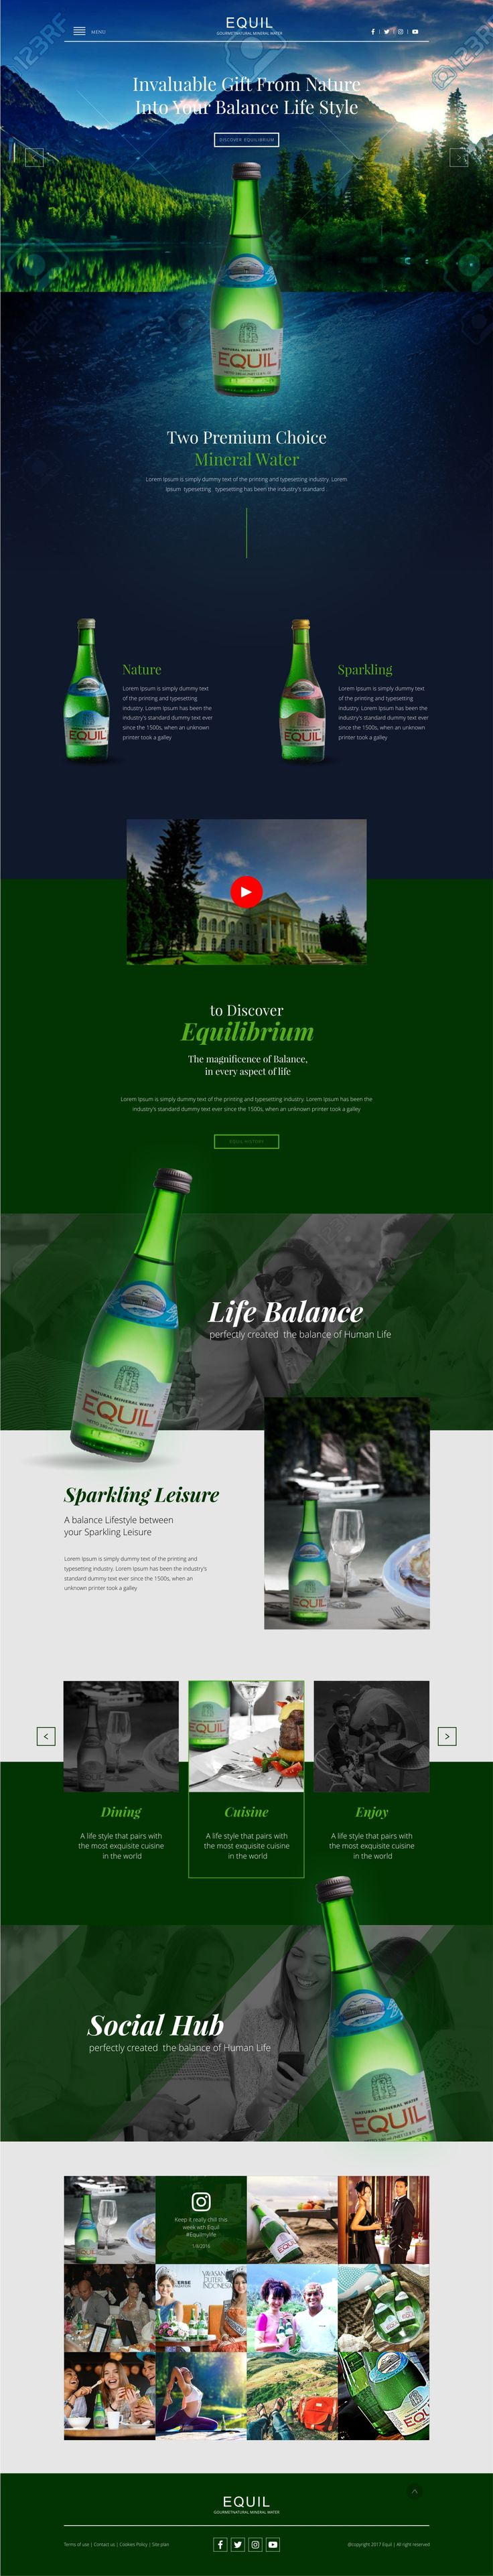 Rian Design Website modern, responsive, simple and elegant (Equil minuman Draft)